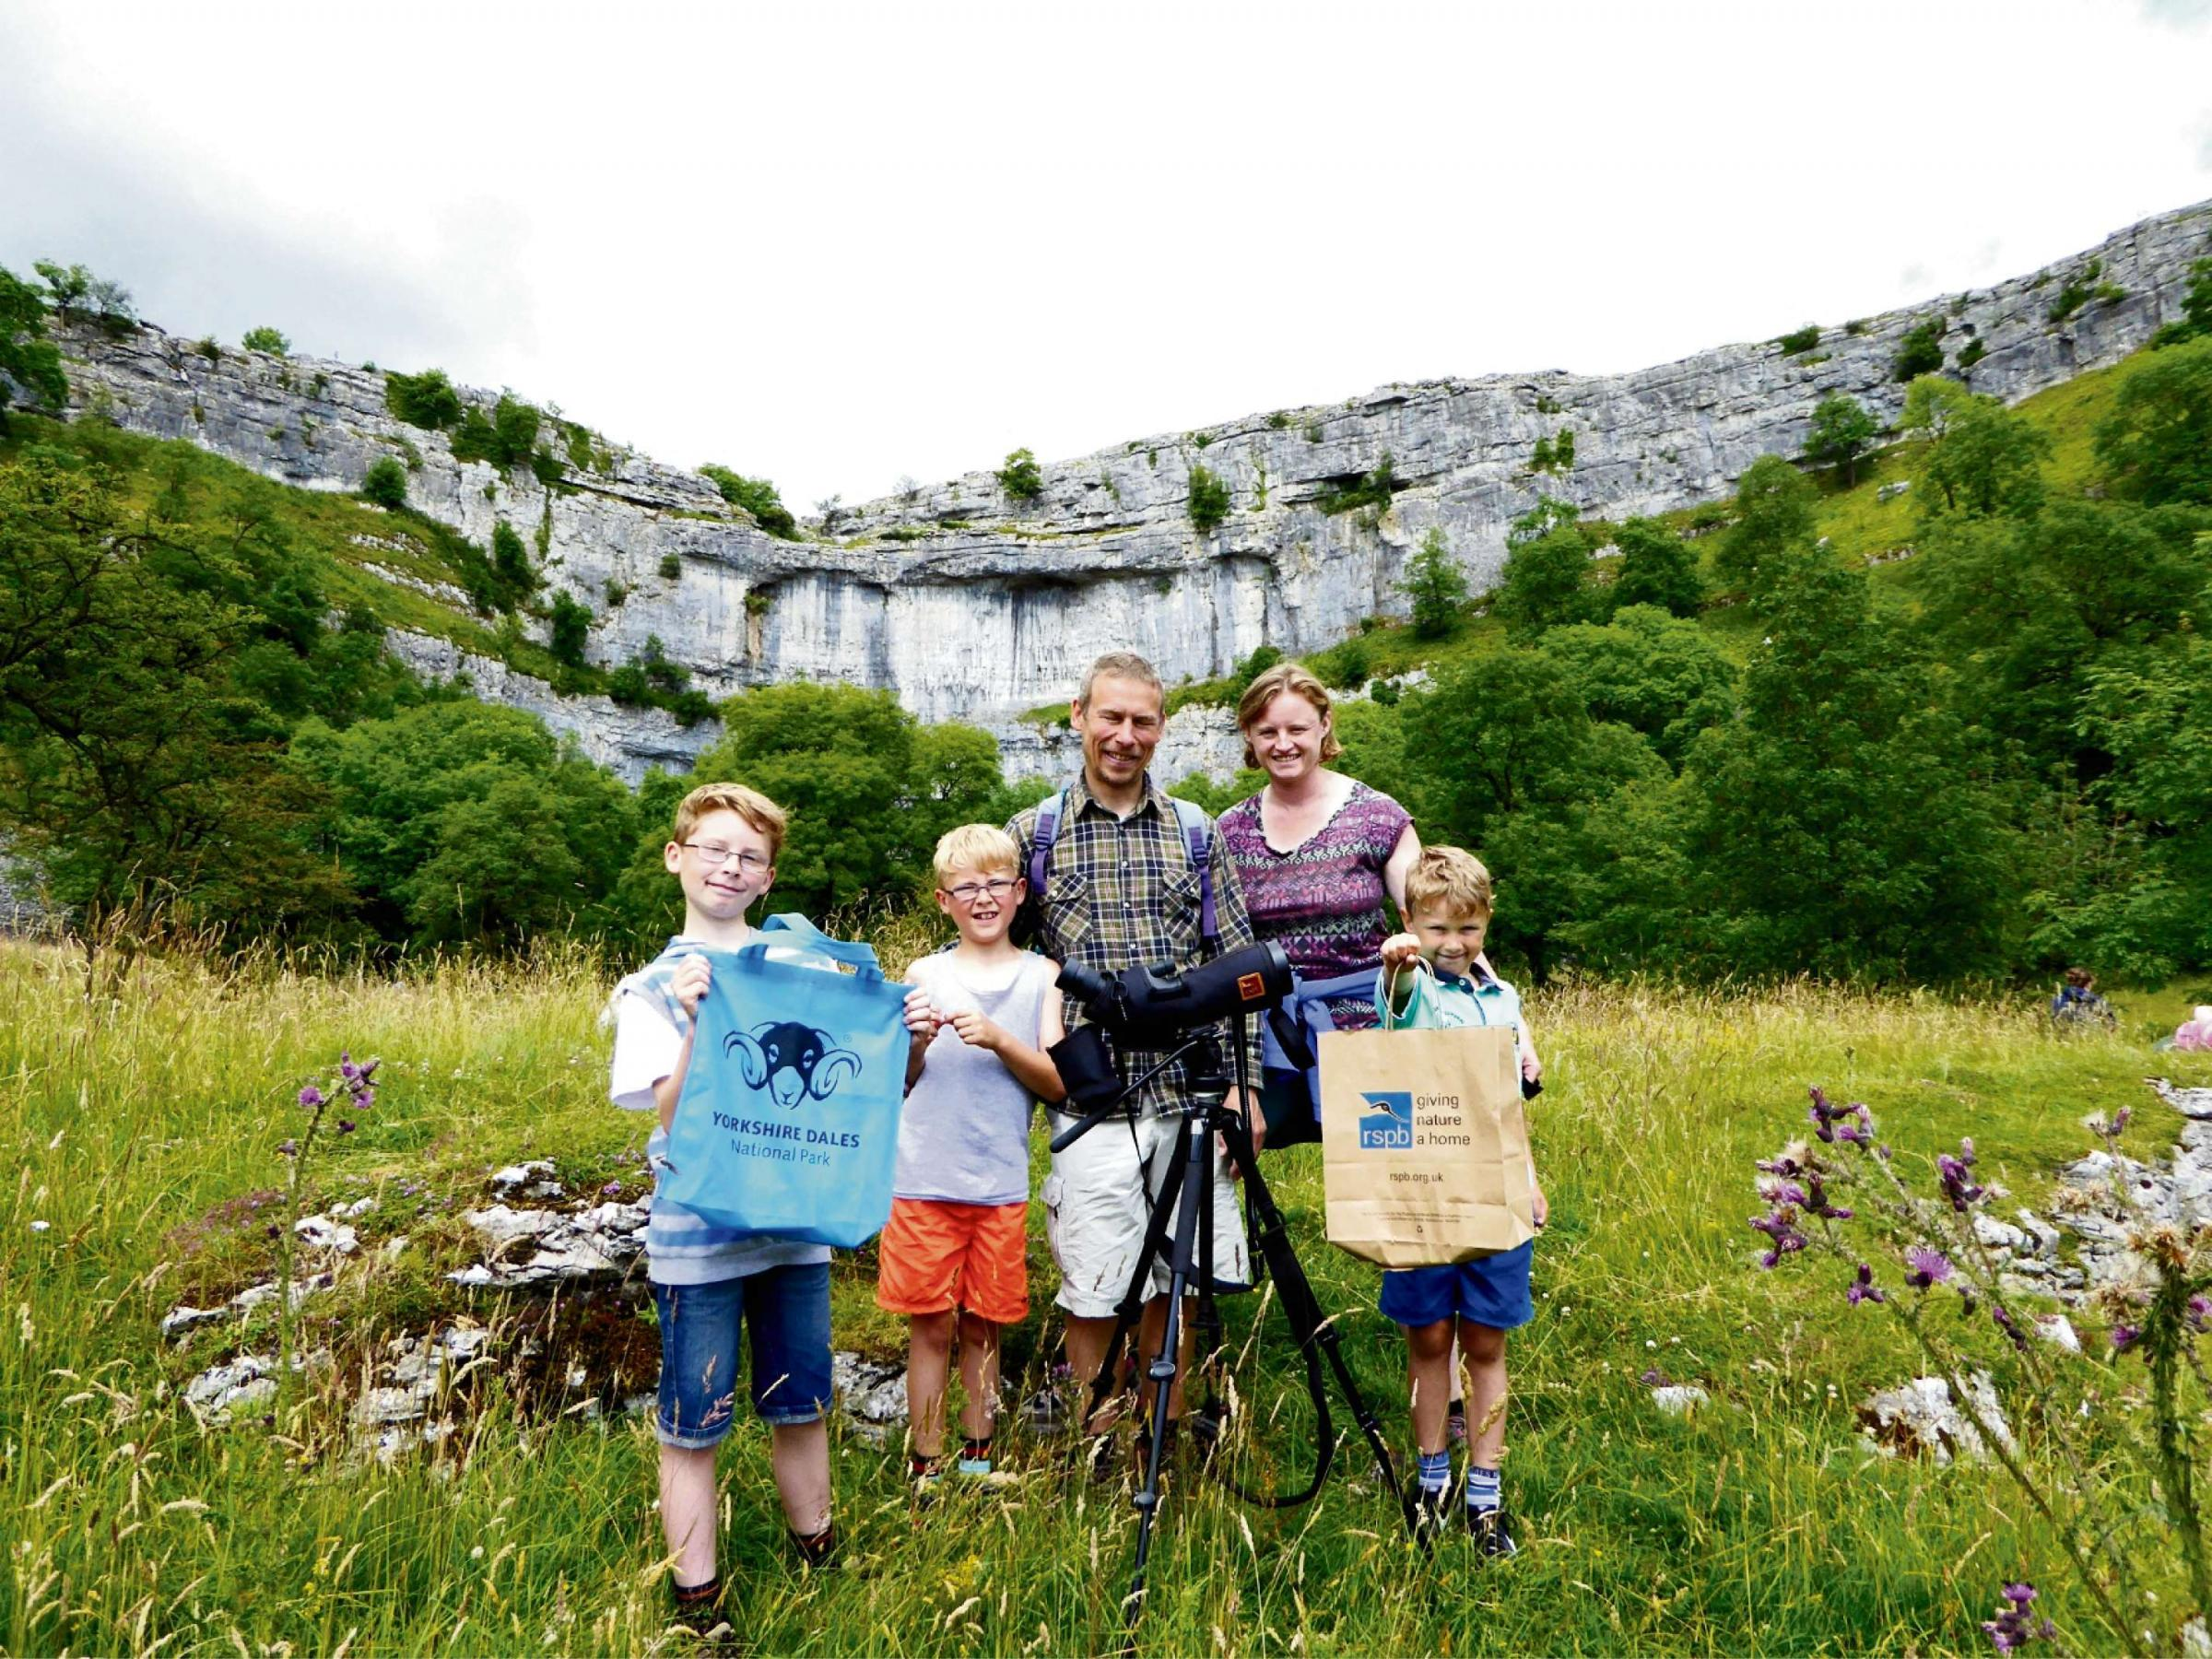 John and Lindsey Eccles and their children. Please credit photo courtesy of the Yorkshire Dales National Park Authority.